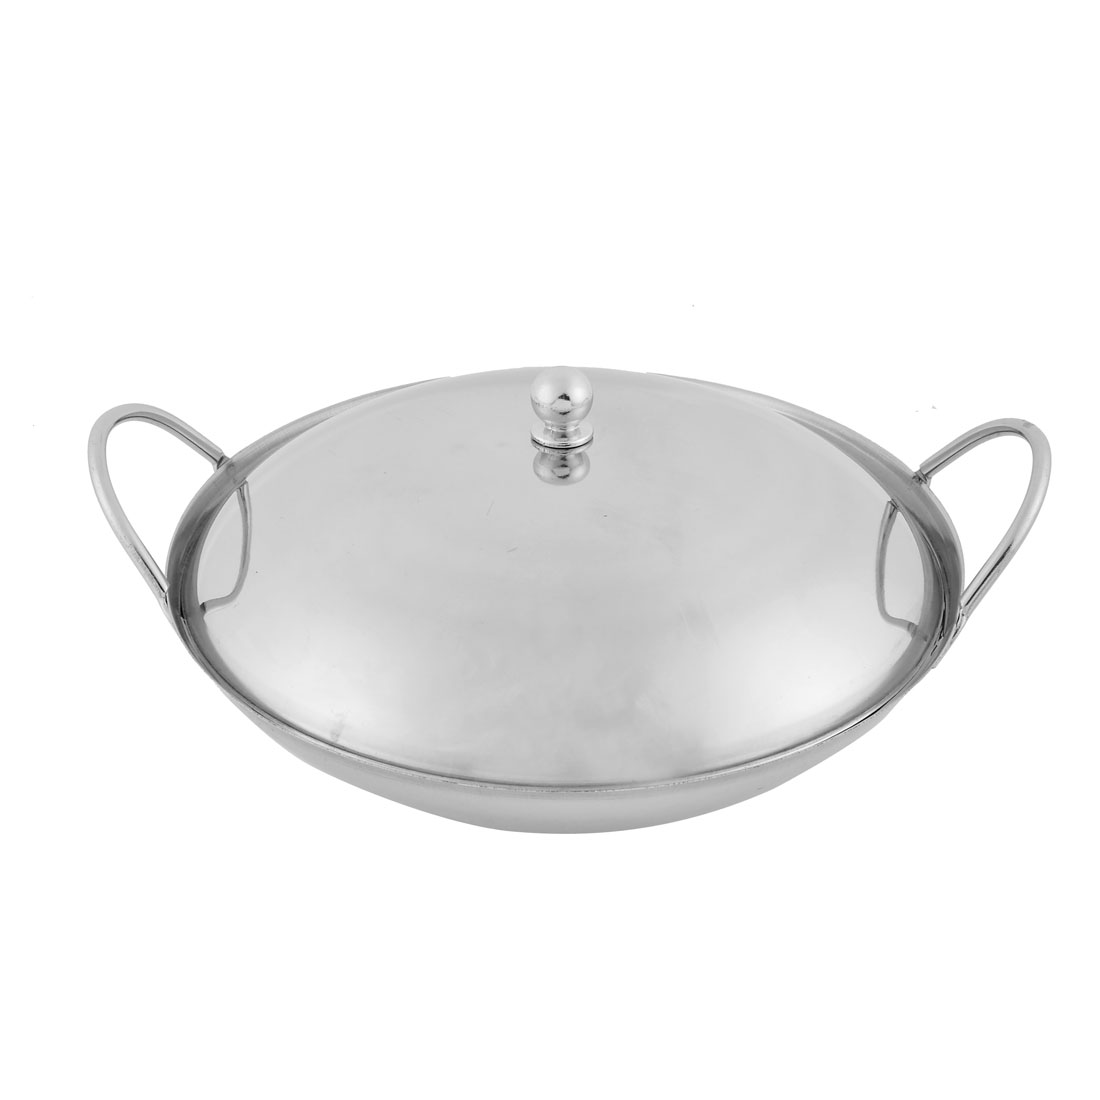 Home Restaurant Stainless Steel Chafing Dish Pot Silver Tone 21cm Diameter w Lid Cover